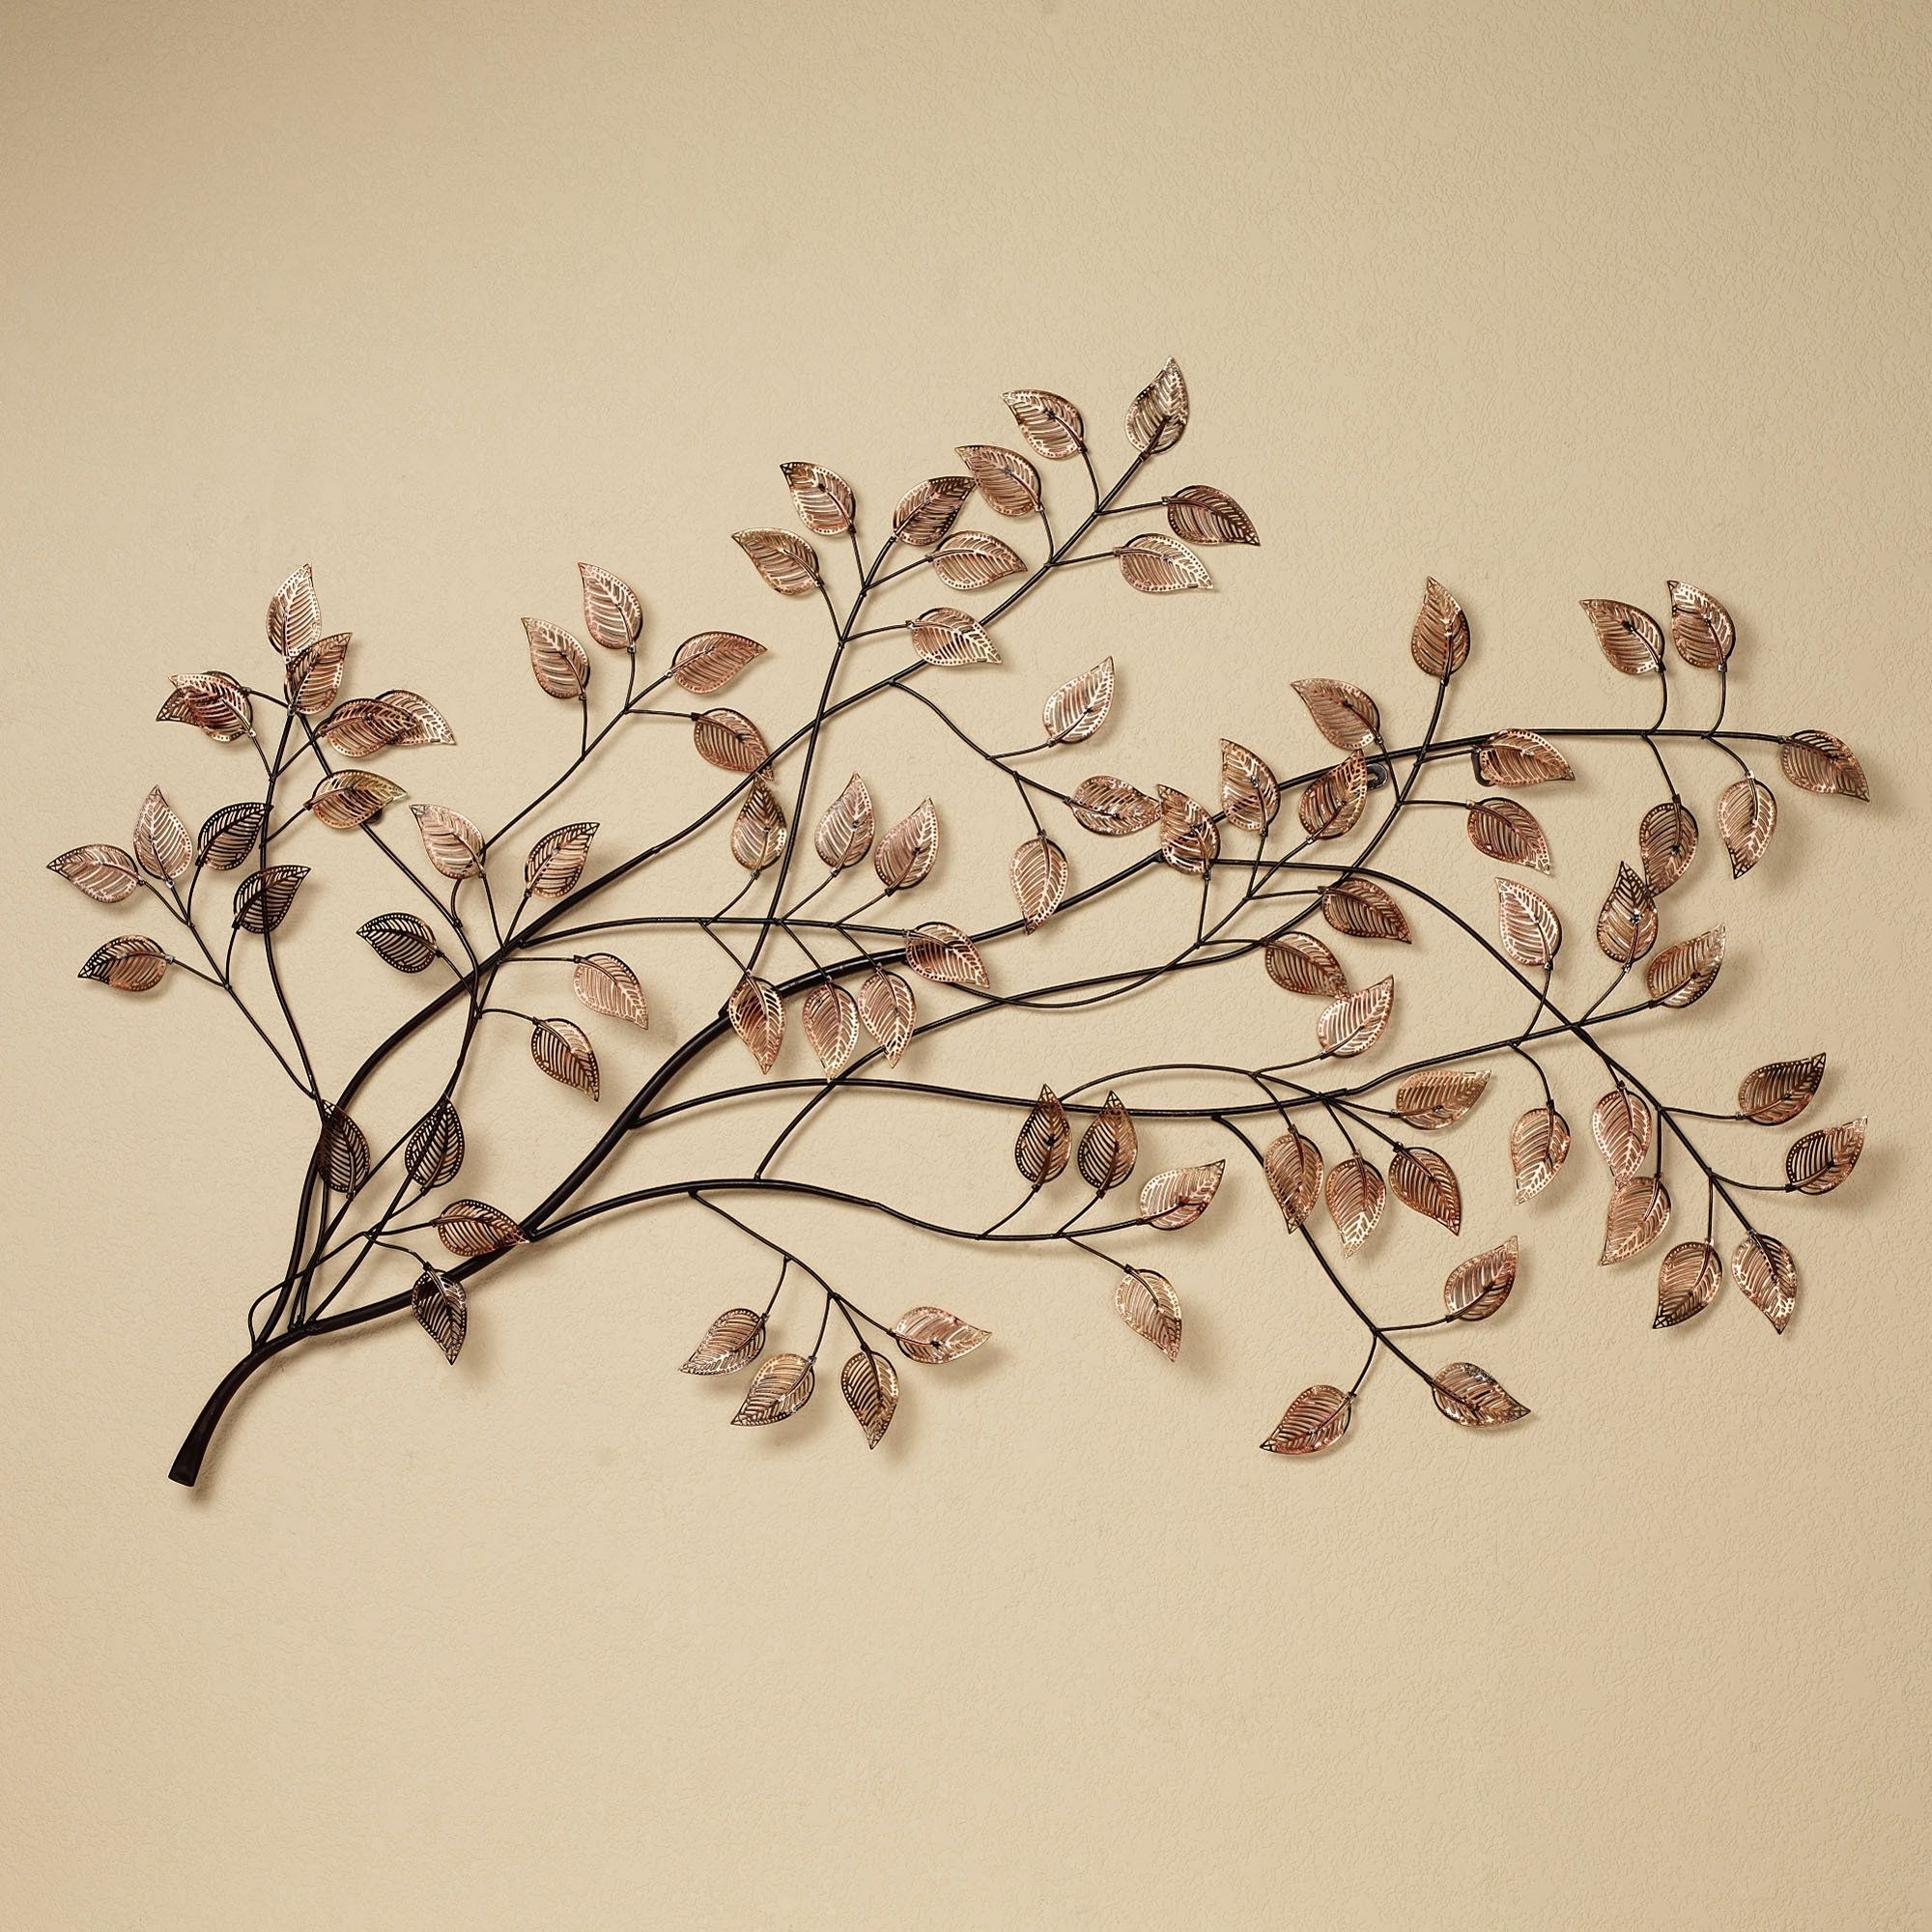 Branches At Sunrise Leaf Metal Wall Sculpture | Metal Wall Intended For Best And Newest Abstract Leaf Metal Wall Art (View 7 of 20)